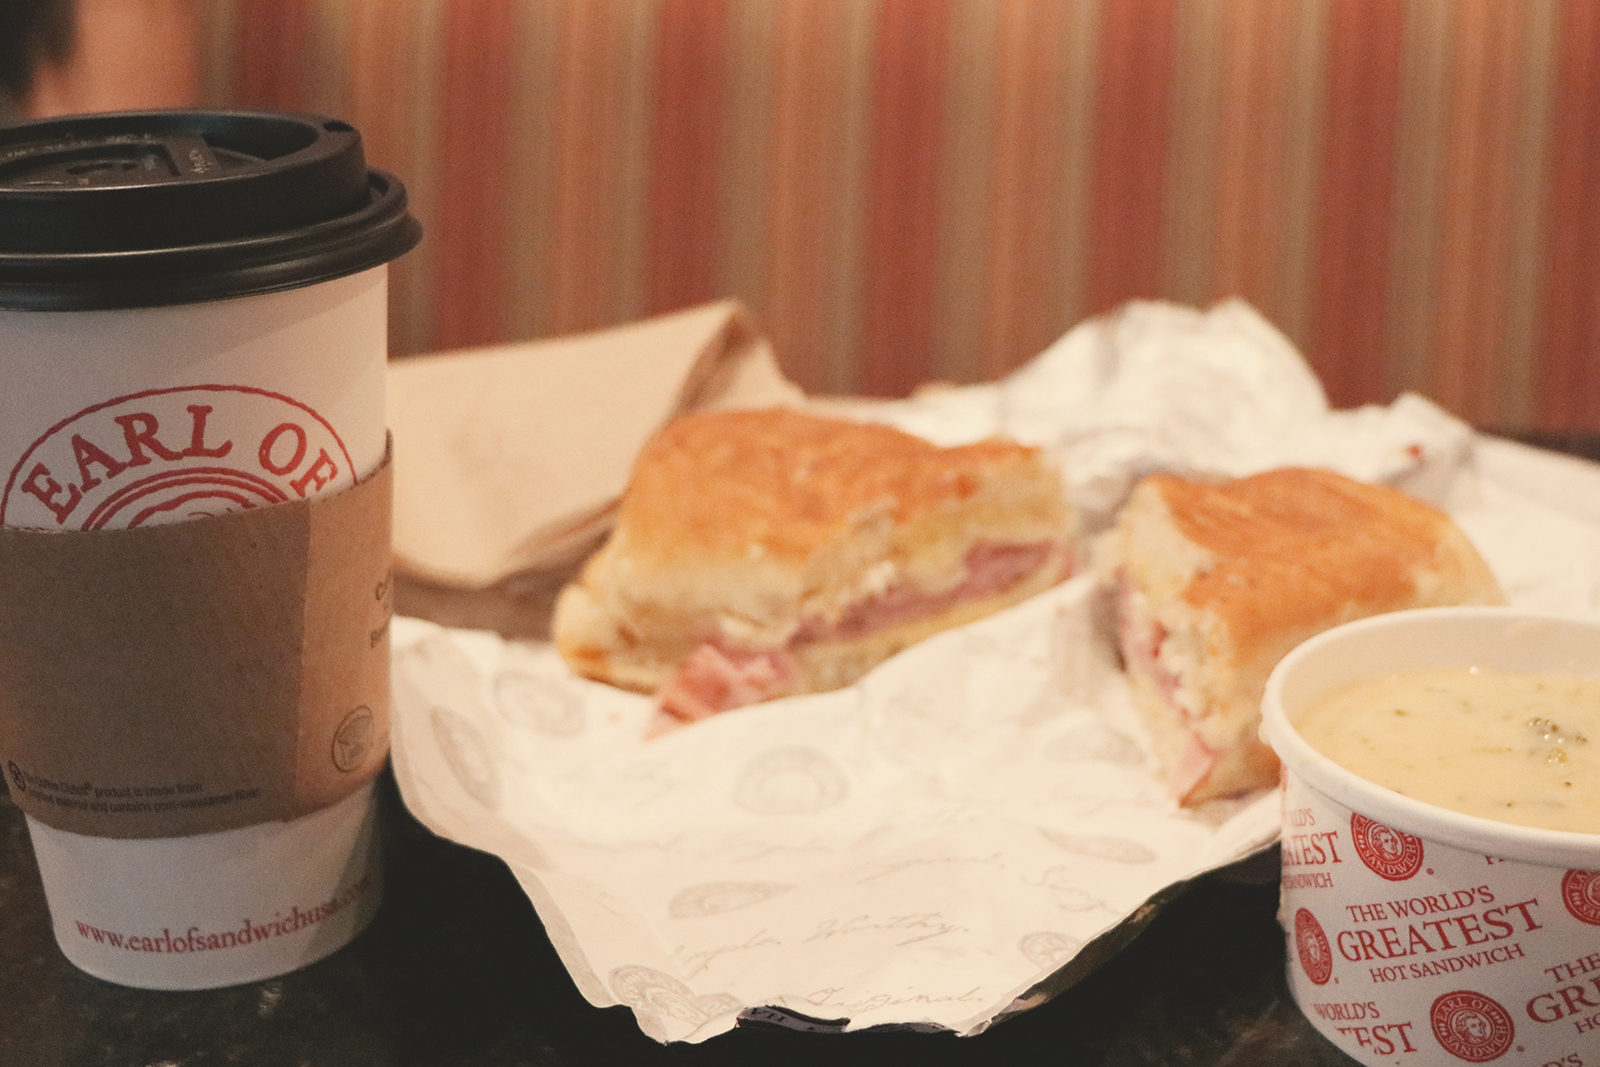 lanche do earl of sandwich